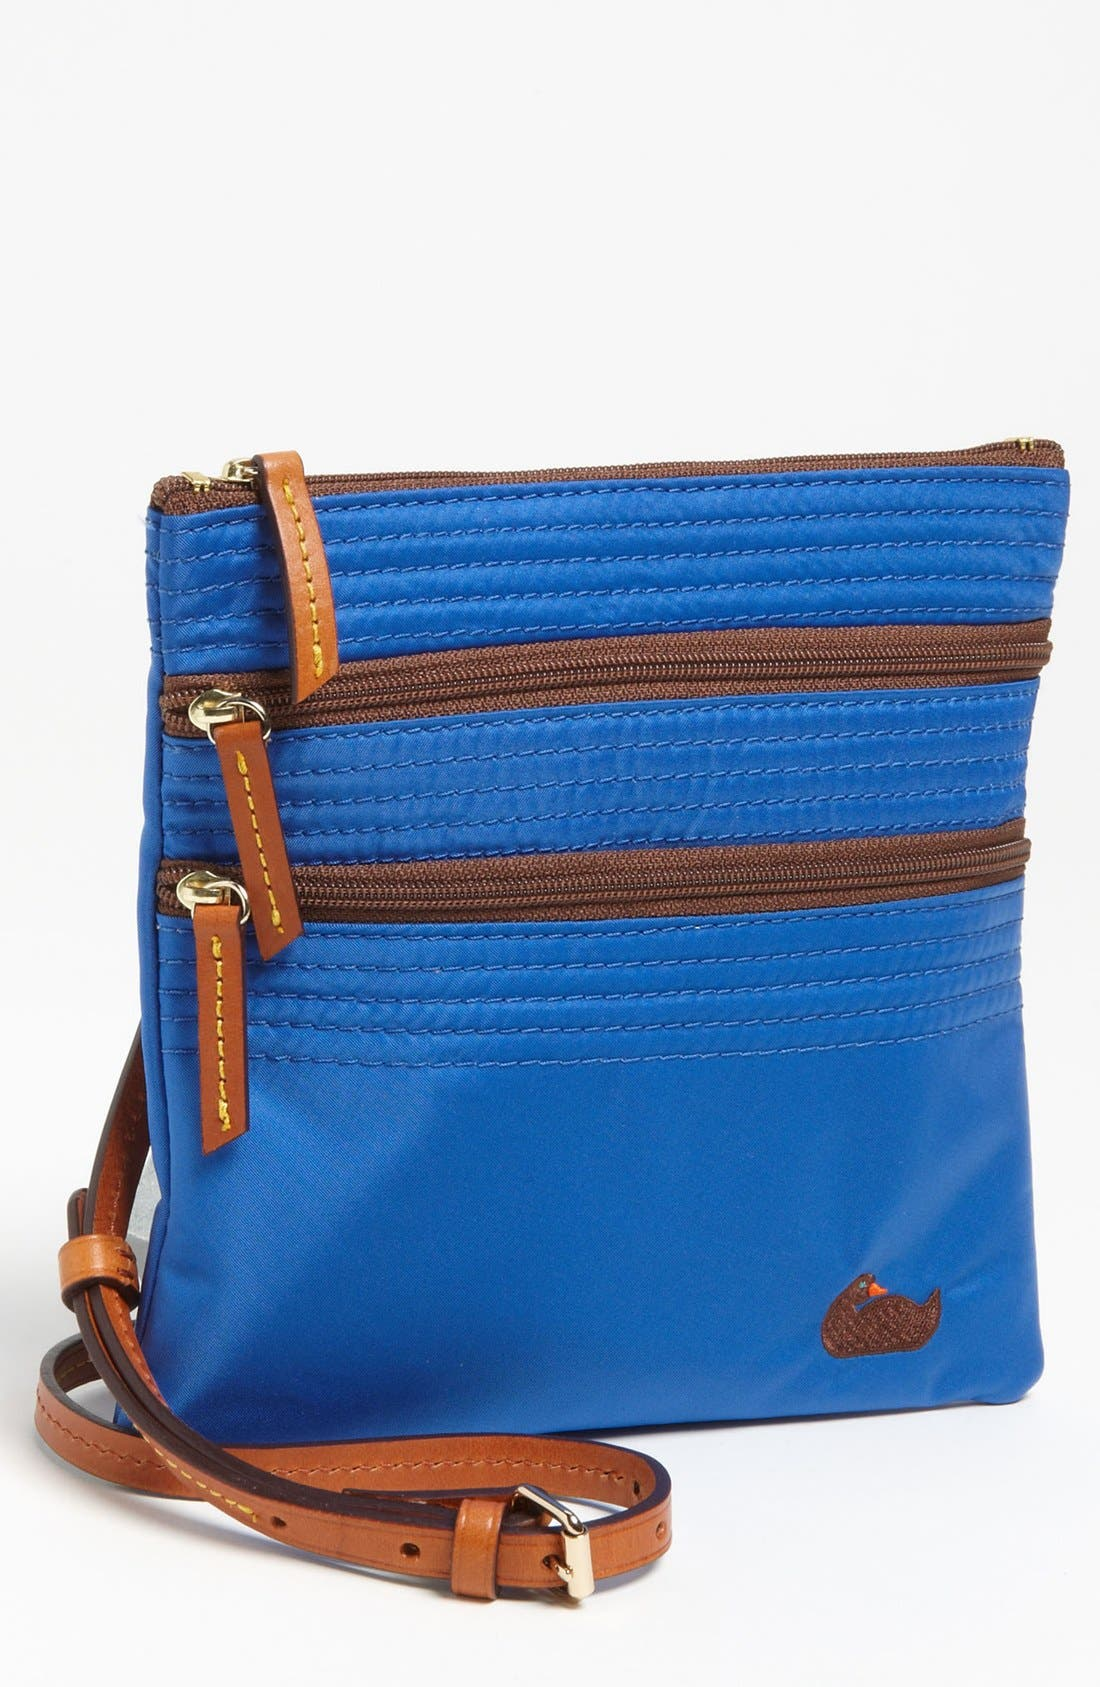 Alternate Image 1 Selected - Dooney & Bourke 'Triple Zip' Nylon Crossbody Bag